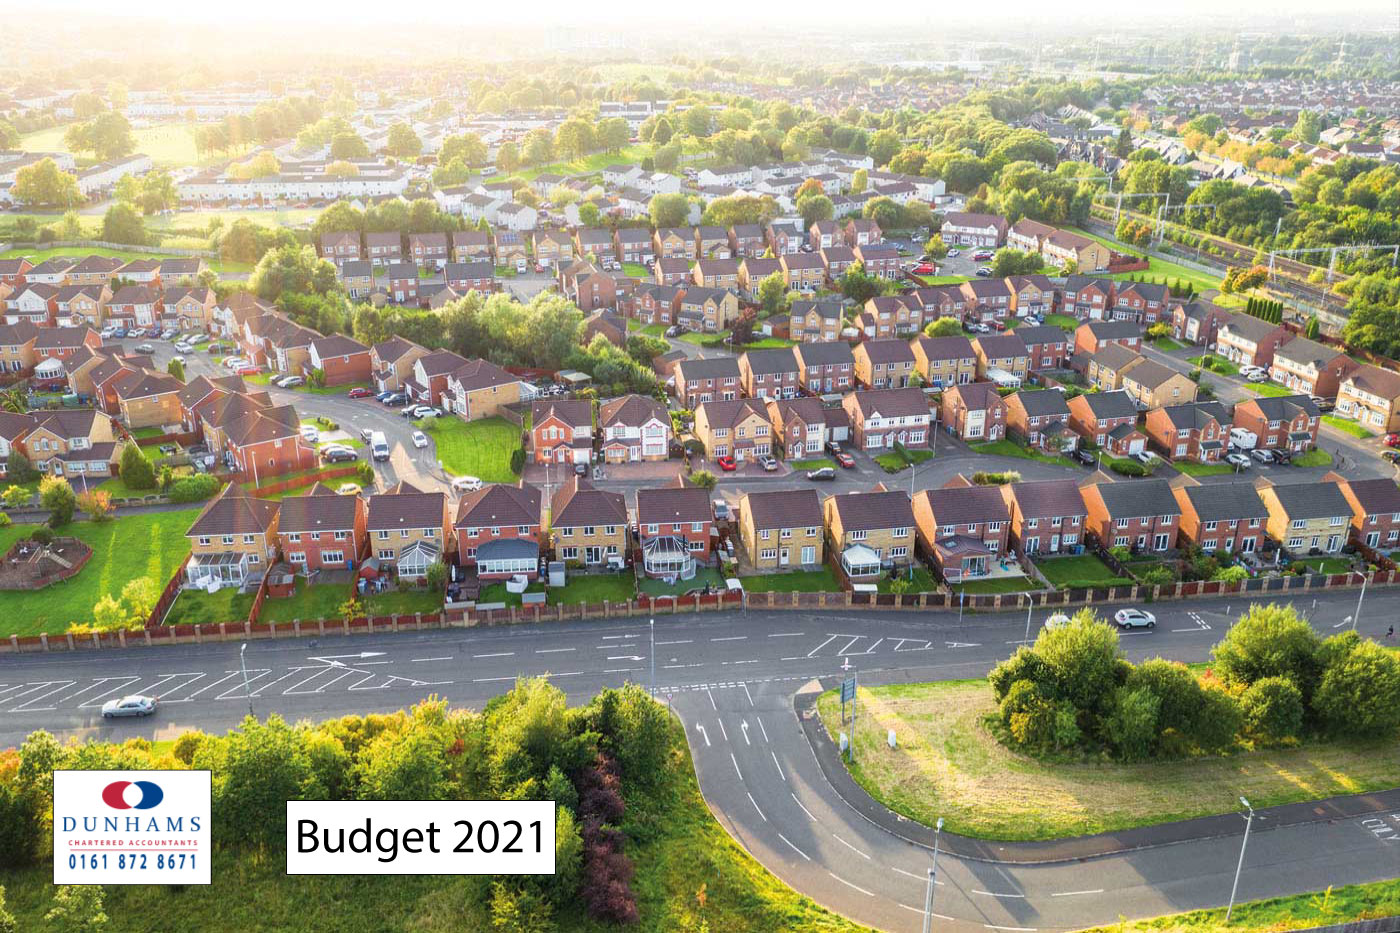 Dunhams Budget Review 2021 - Other Matters Overview.